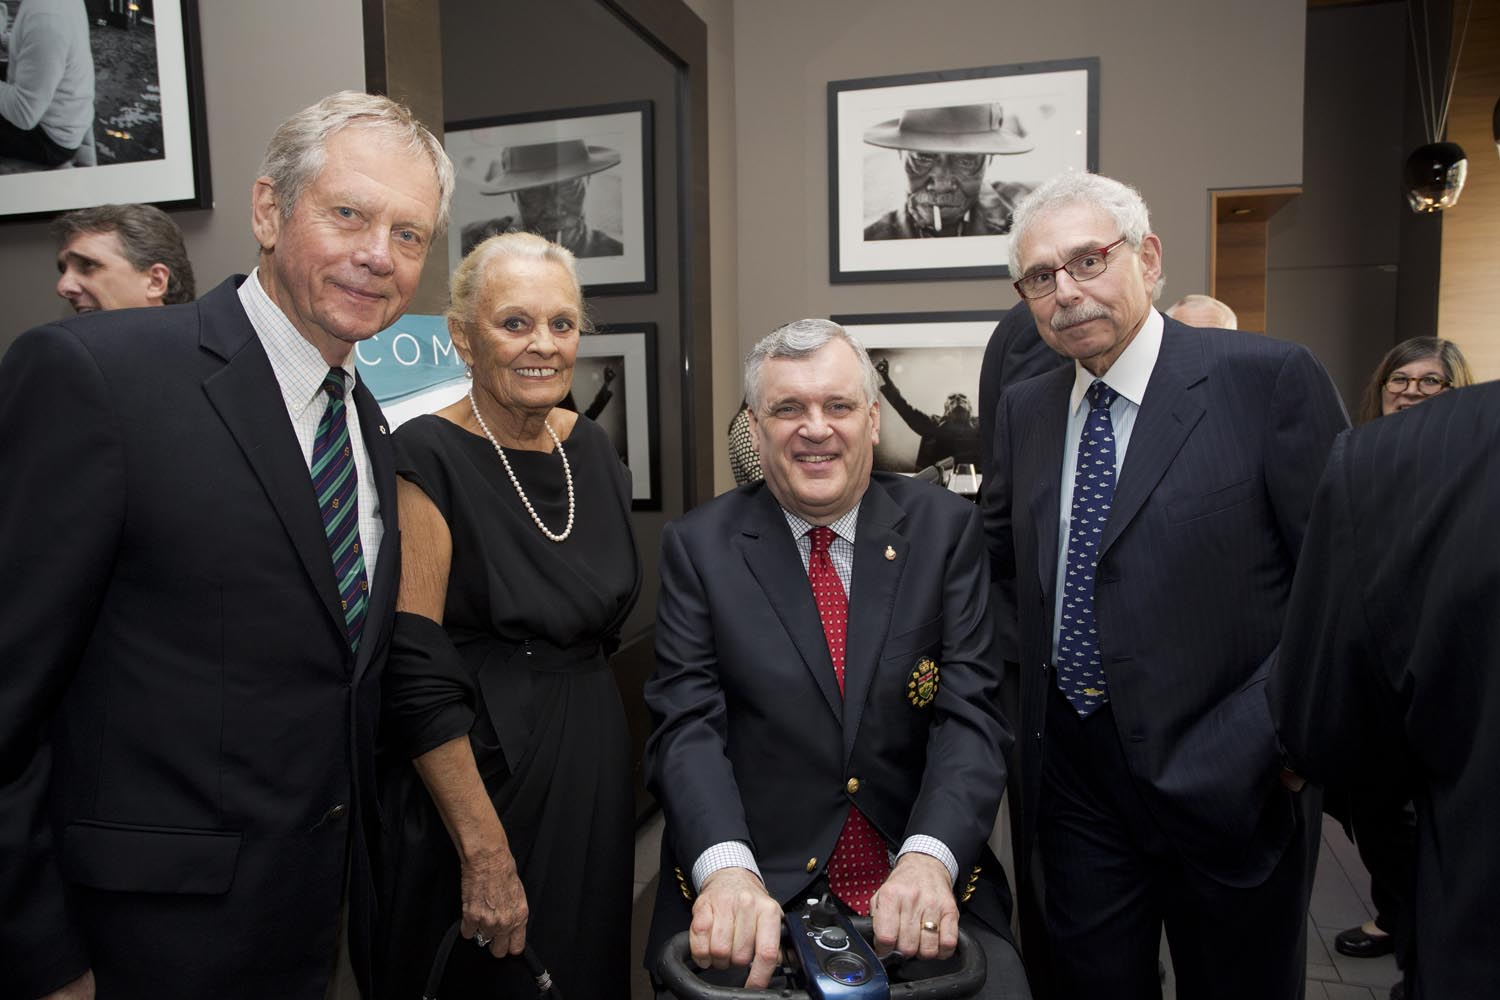 Mr. Robert Bateman, Mrs. Loretta Rogers, The Honourable David Onley, Lieutenant Governor of Ontario and Dr. Bernie Gosevitz